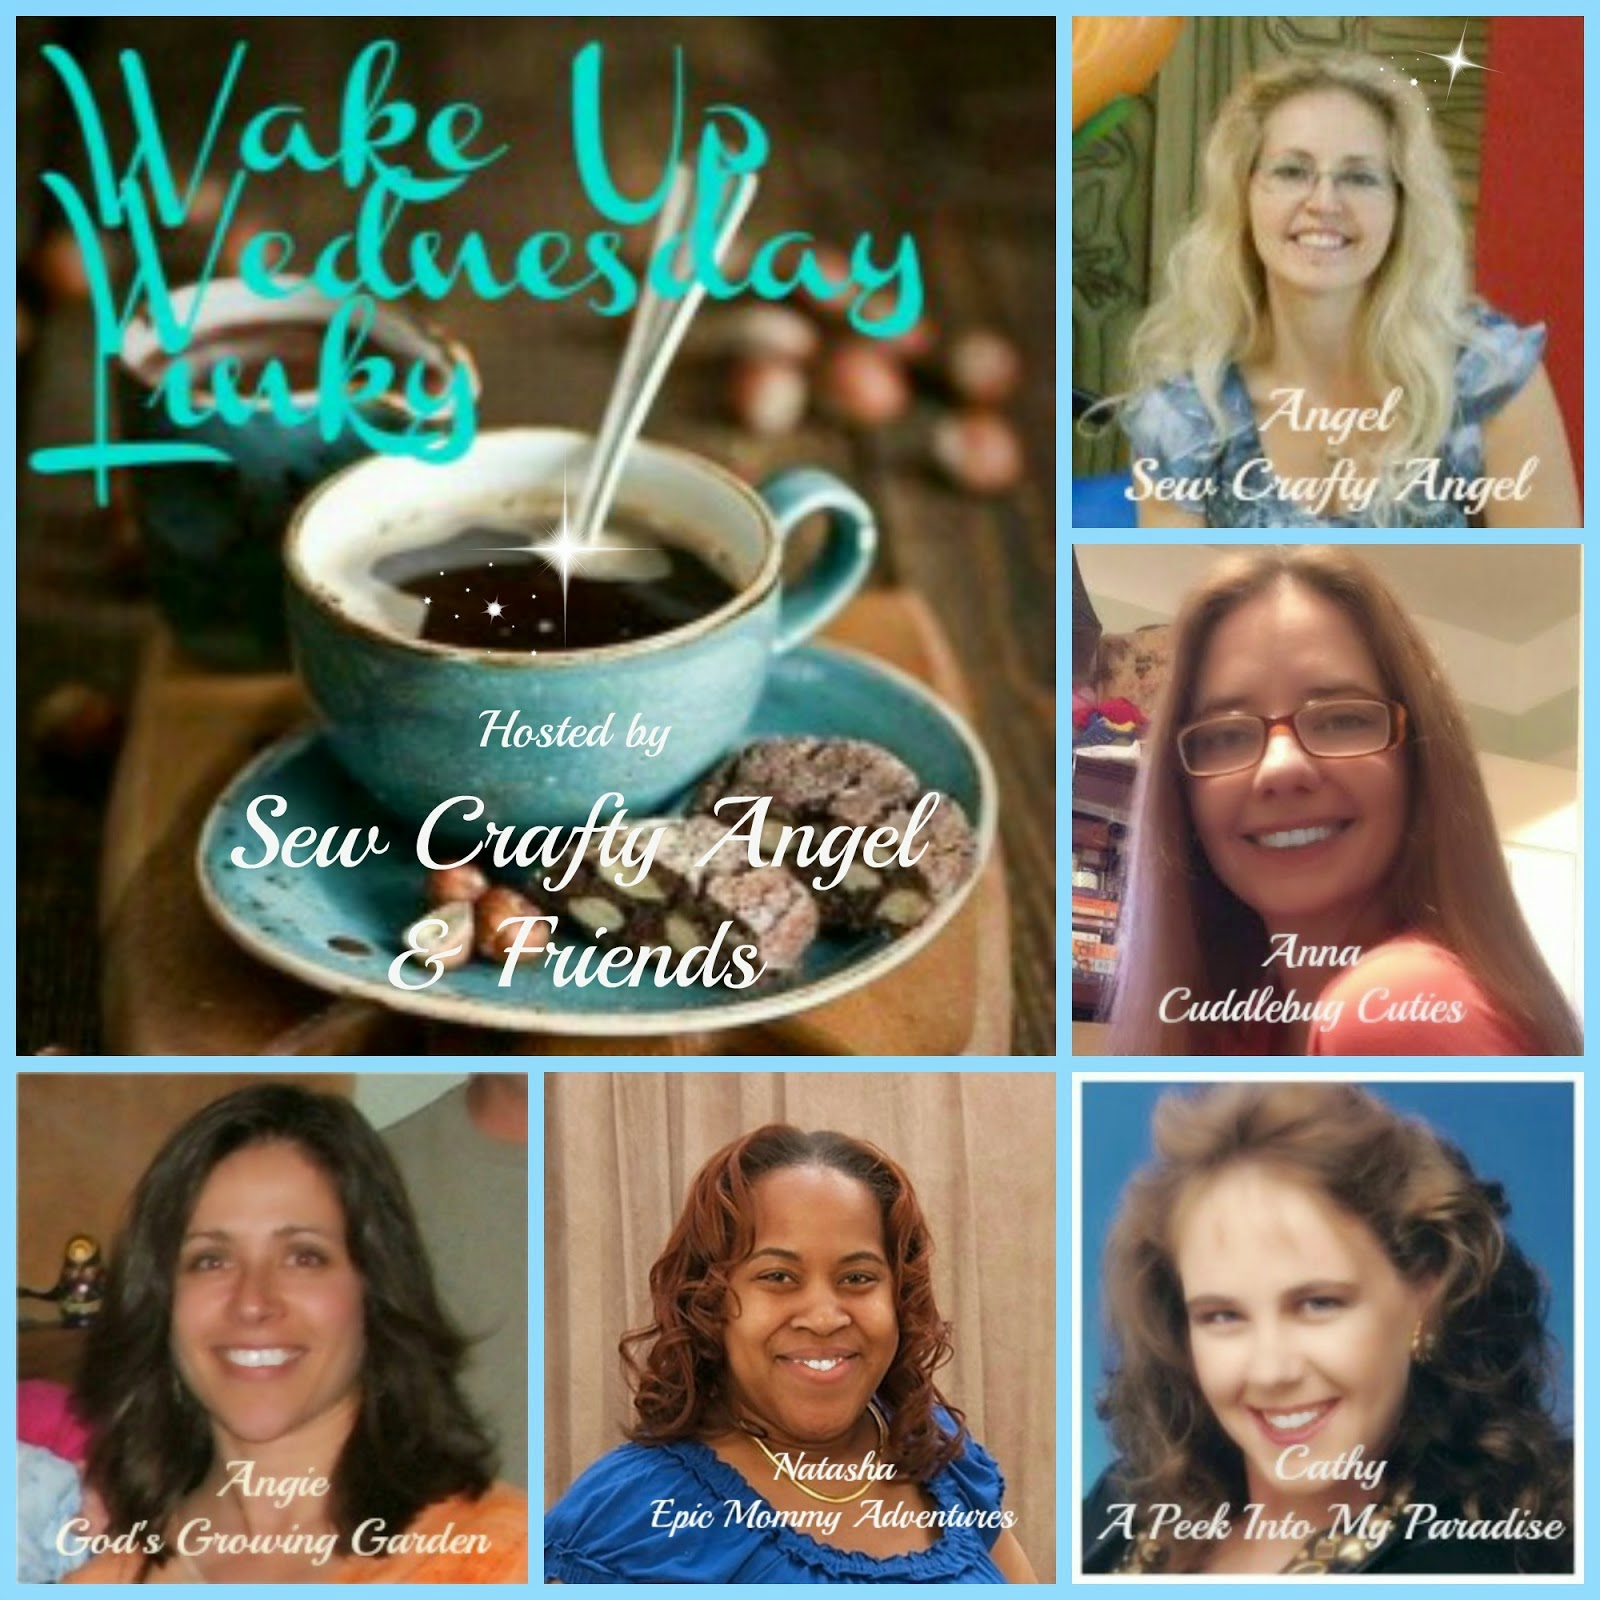 http://sewcraftyangel.blogspot.com/2015/03/wake-up-wednesday-linky-party-62.html